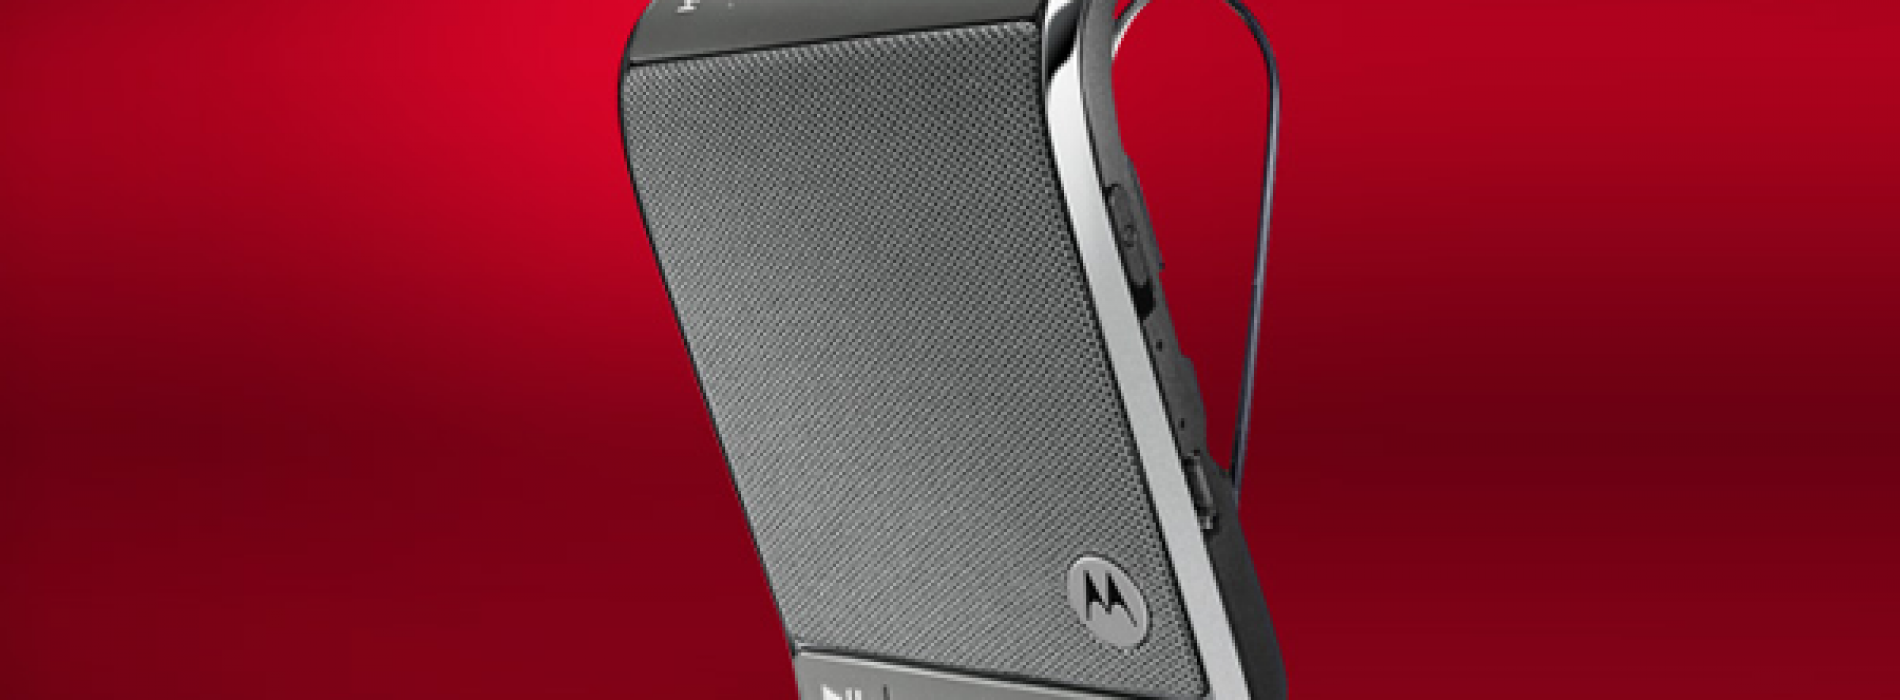 Win one of two Motorola Roadster 2 Bluetooth In-Car Speakerphones [GIVEAWAY]